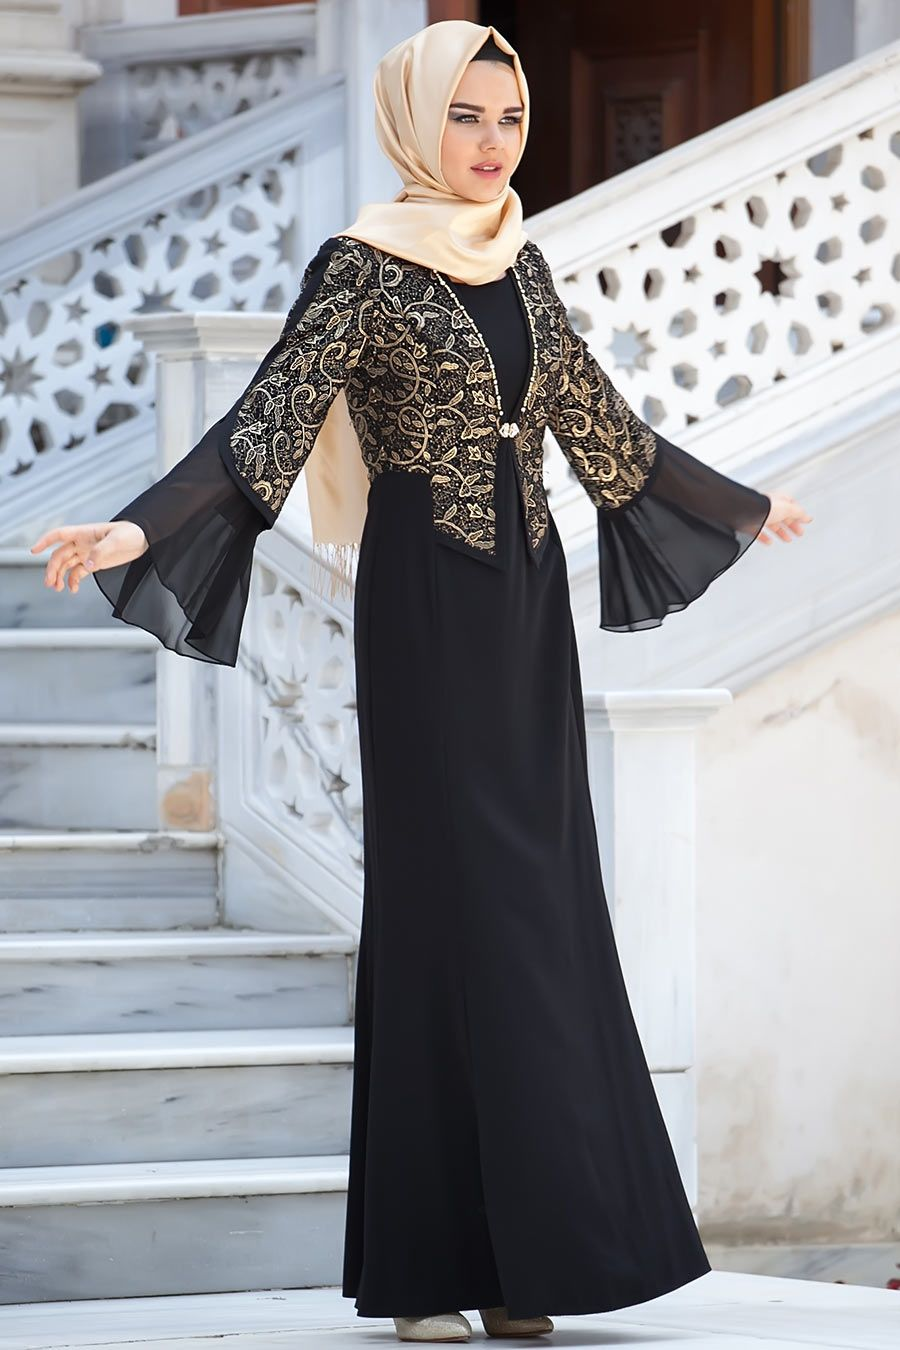 Lace umbrella abaya   Best images about lengan on Pinterest  Linen shirts Models and Lace